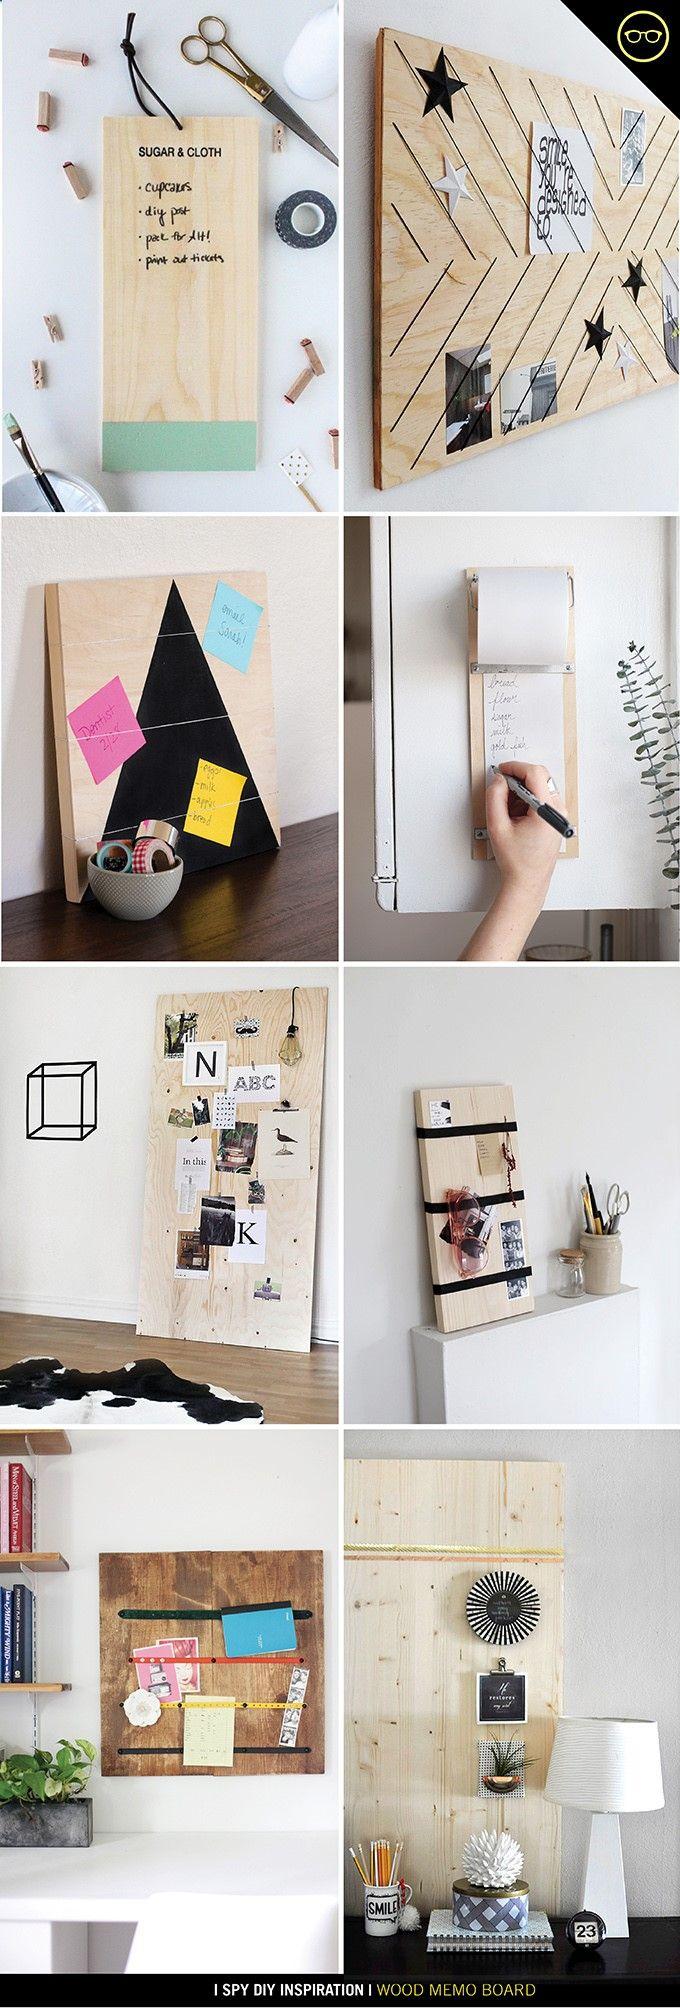 Plans maison en photos 2018 diy inspiration wood memo for Diy plans de maison gratuitement